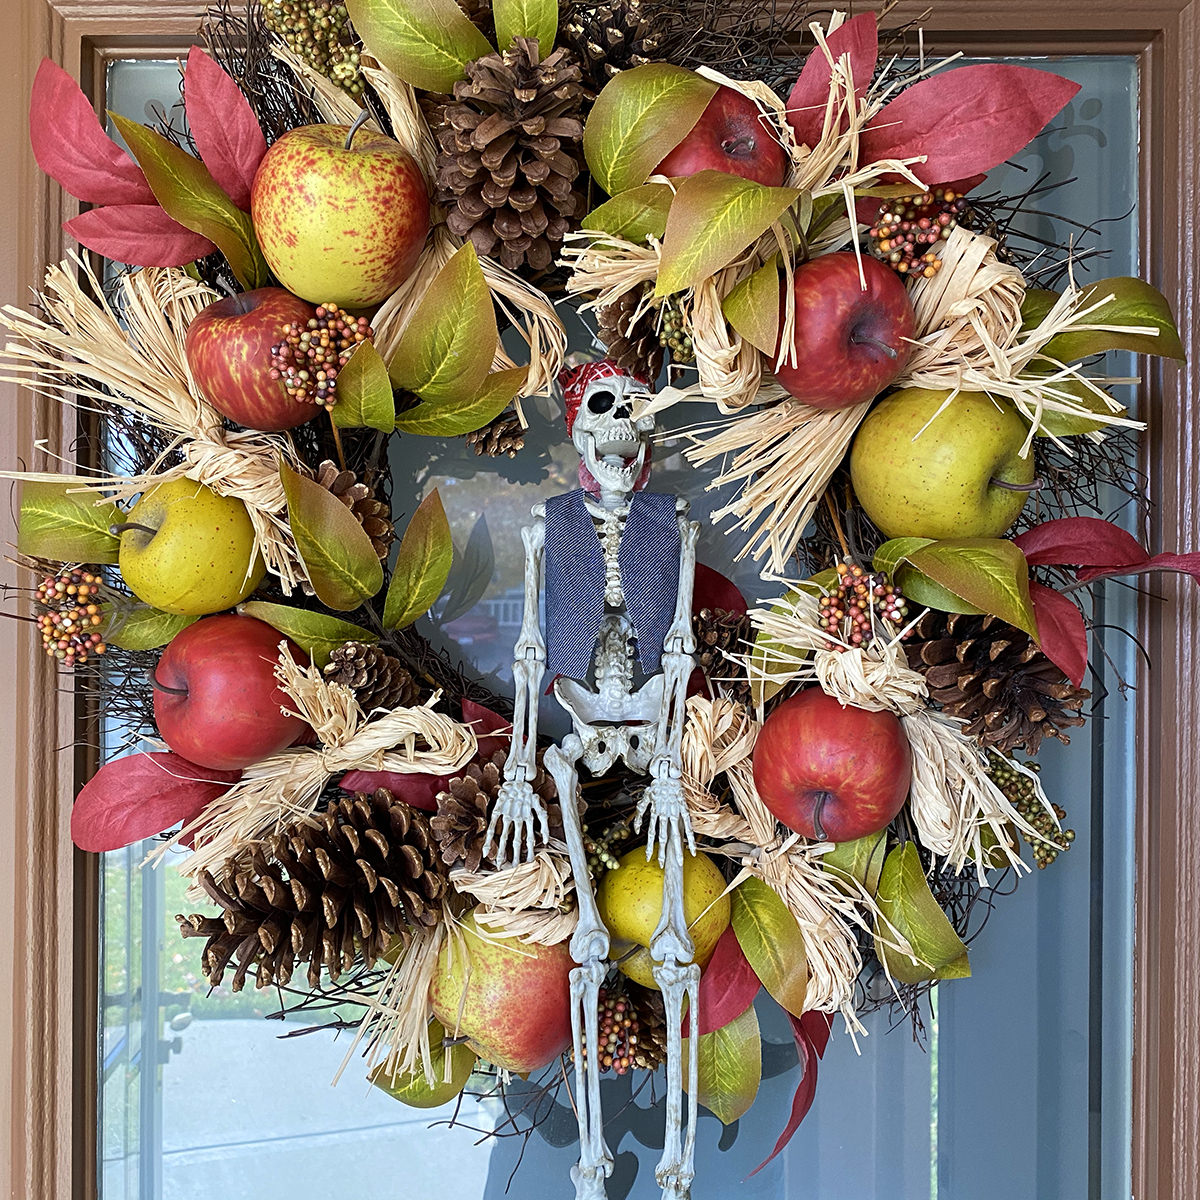 A wreath on my door filled with fake apples, real pinecones, and other Fall-apropriate stuff... with a pirate skeleton in the middle.